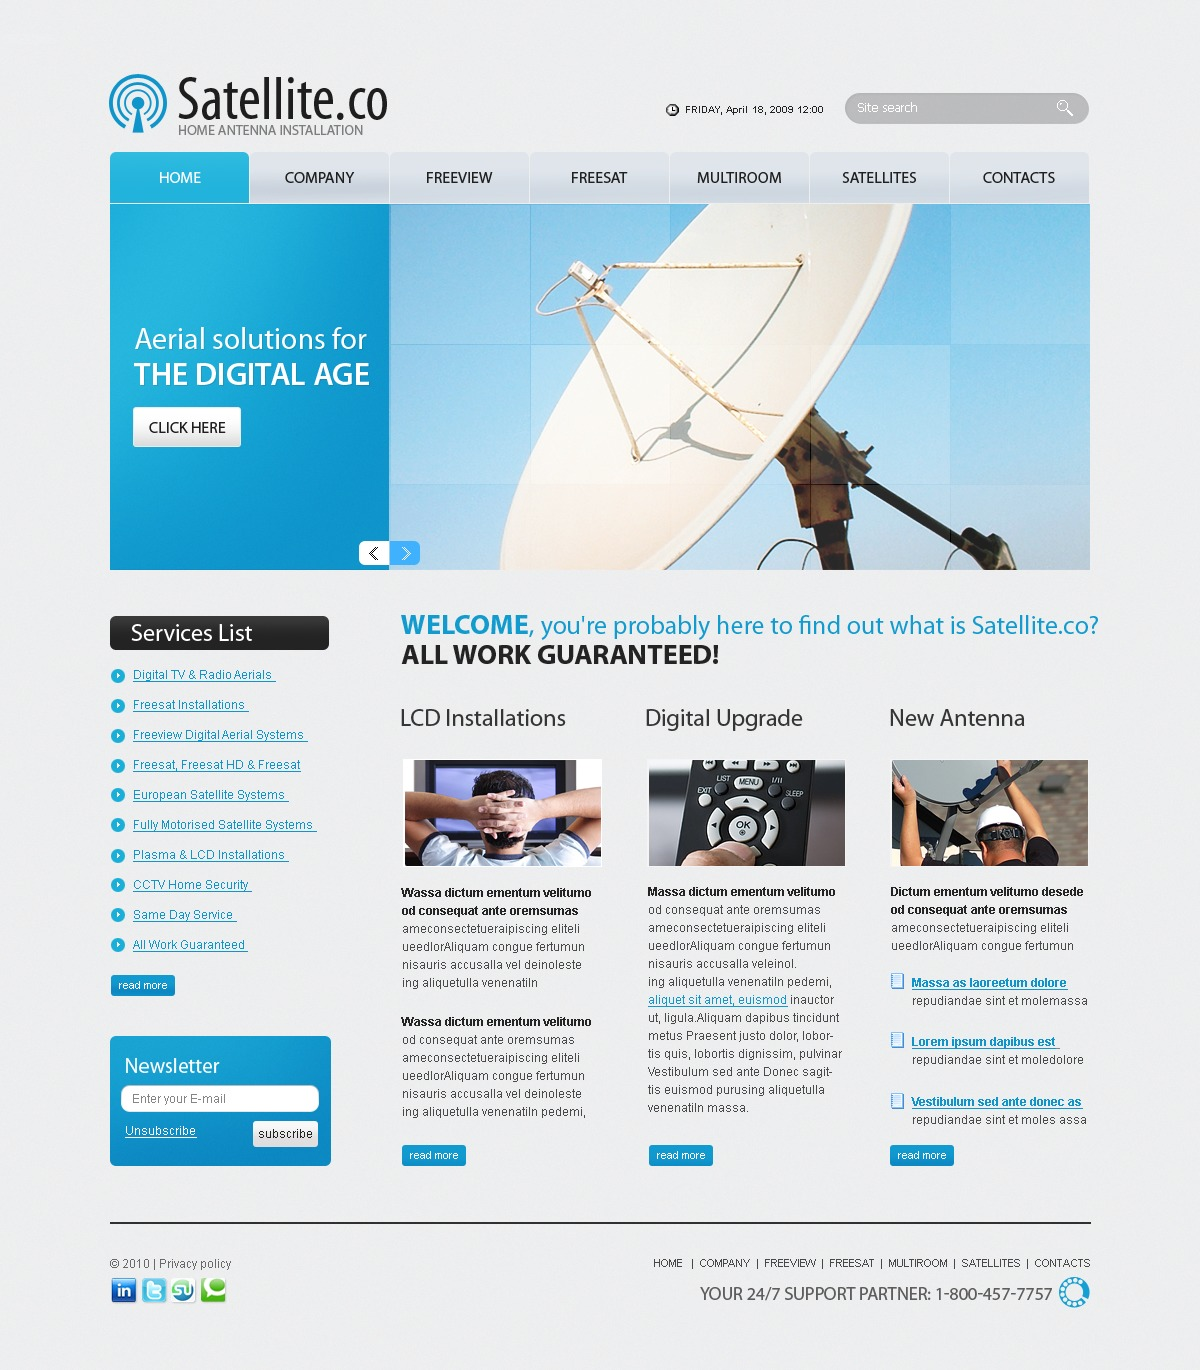 The Satelite Company PSD Design 54268, one of the best PSD templates of its kind (communications, most popular, flash 8, wide), also known as satelite company PSD template, aeriax PSD template, antenner PSD template, satellites PSD template, aerials PSD template, plasma PSD template, tv PSD template, services PSD template, installation PSD template, sales PSD template, antenna and related with satelite company, aeriax, antenner, satellites, aerials, plasma, tv, services, installation, sales, antenna, etc.